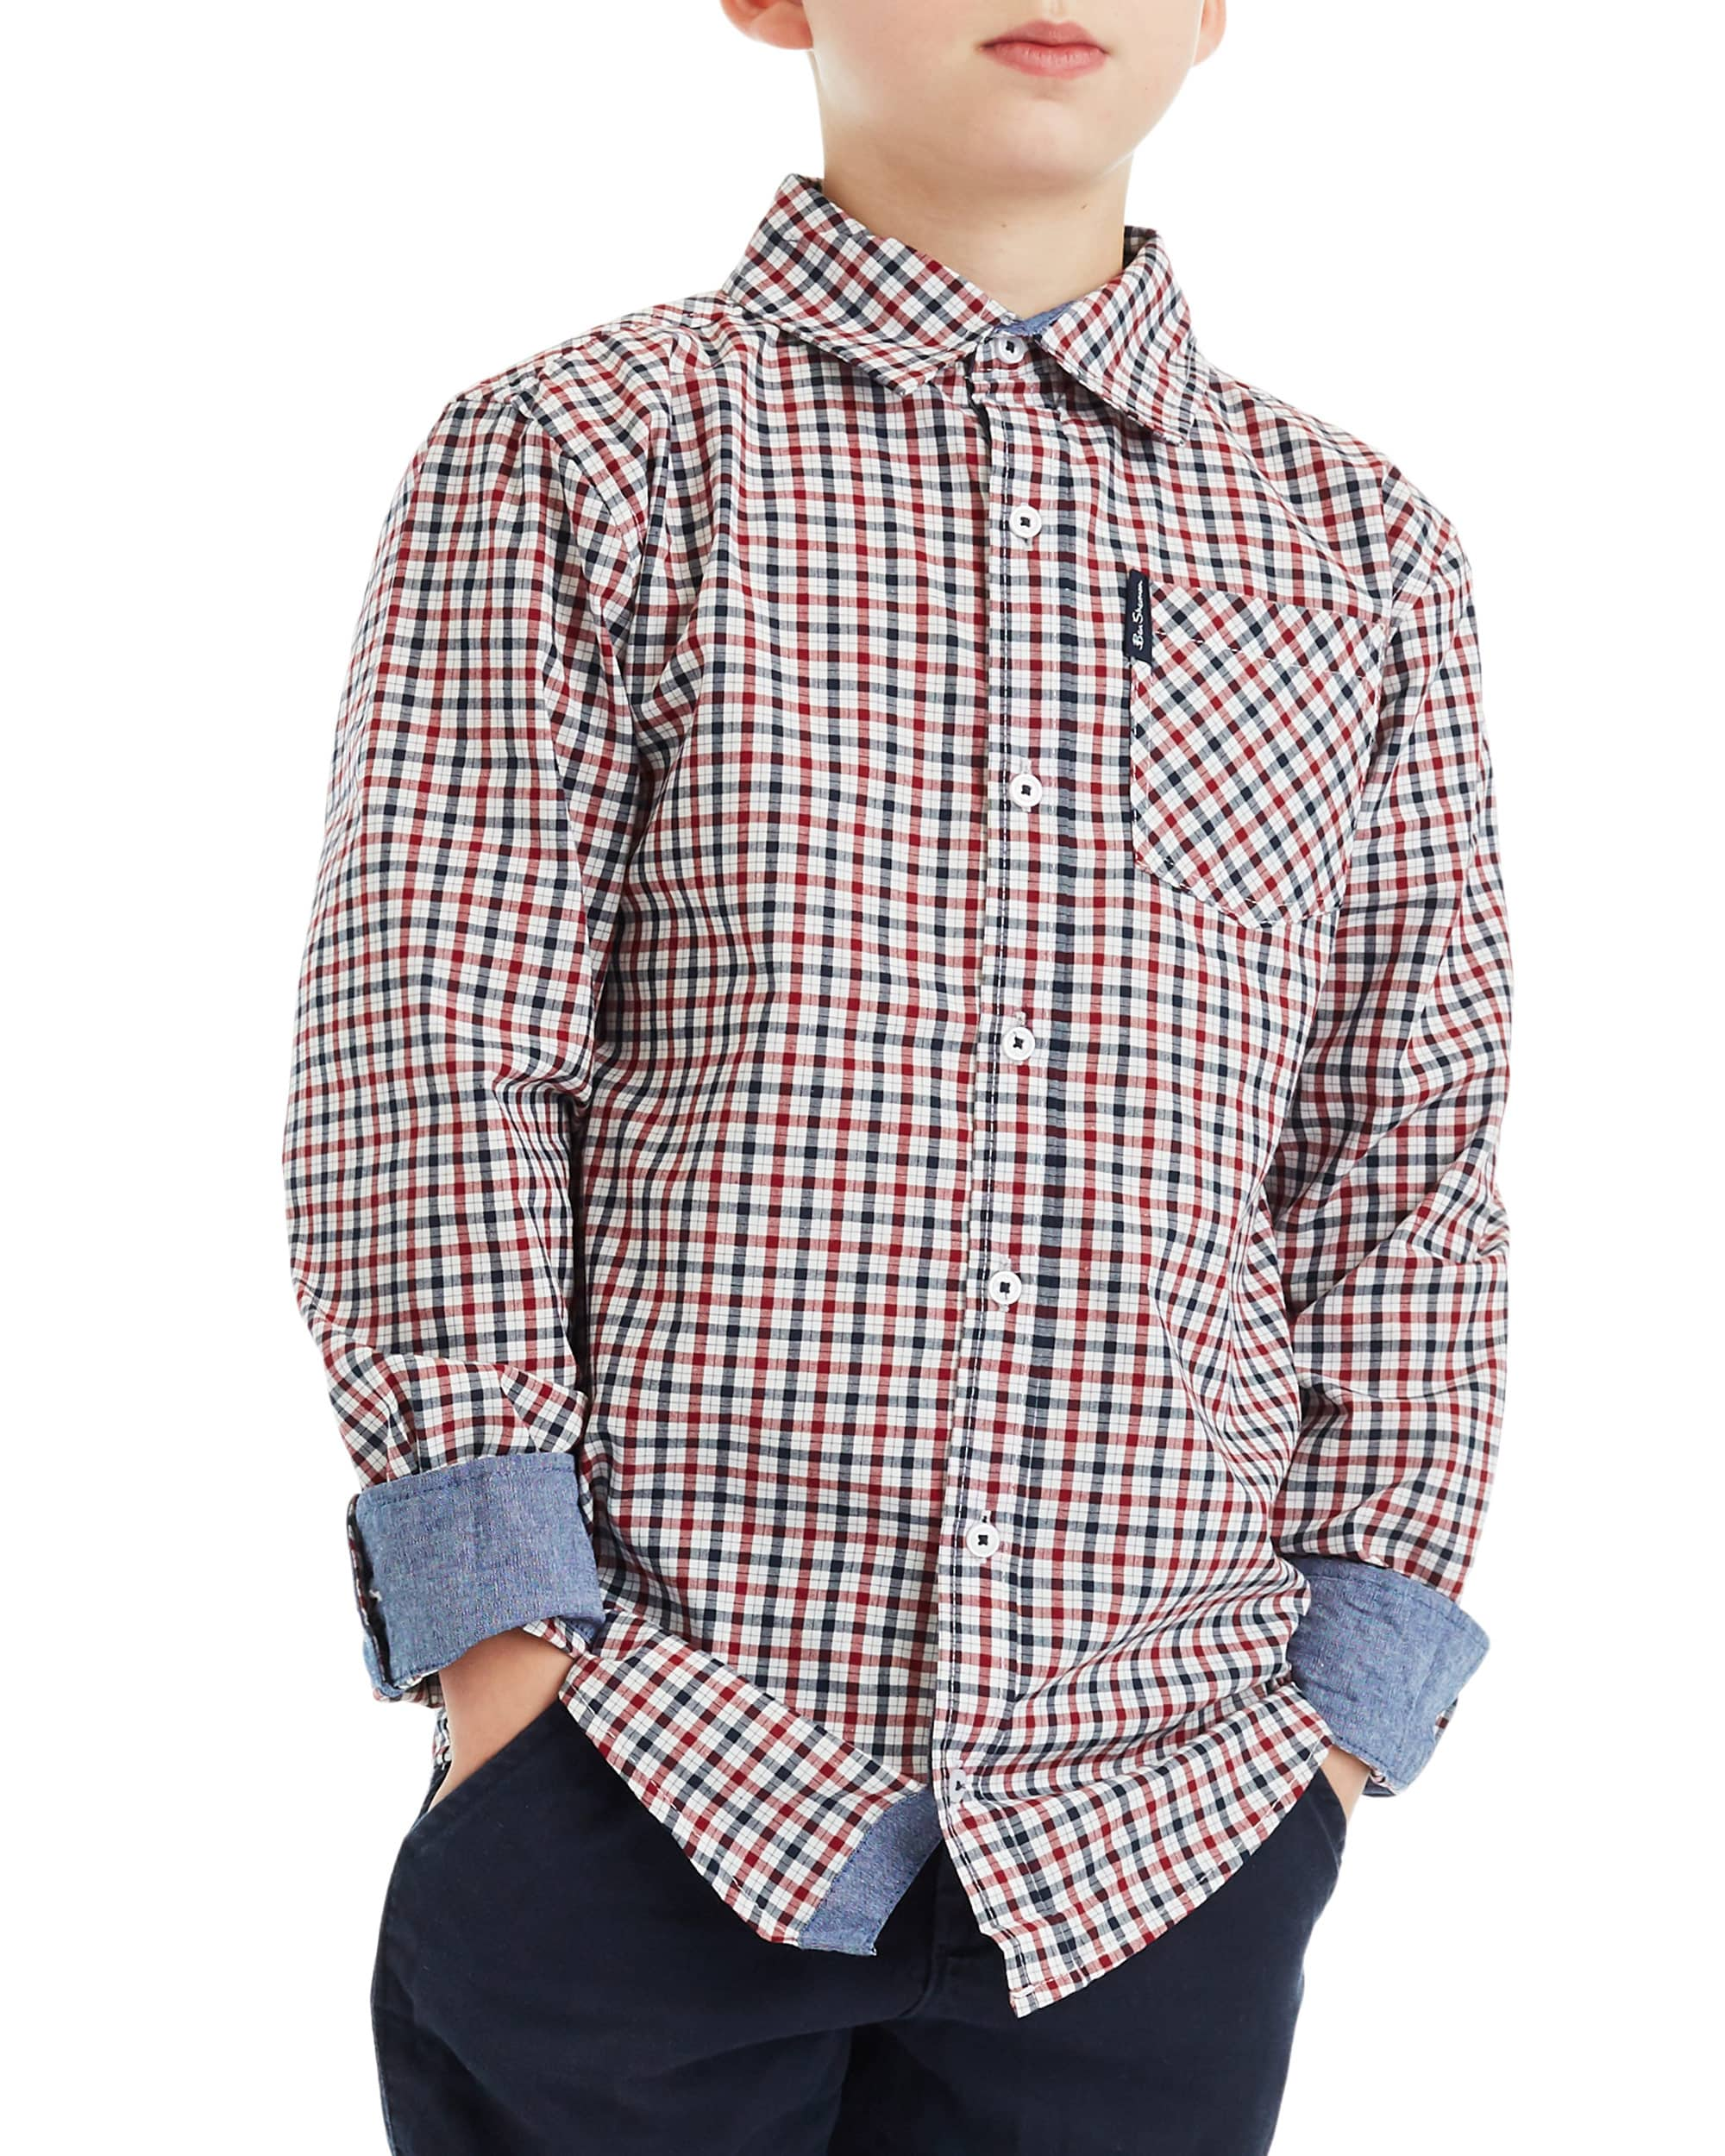 Boys' Red/White/Blue Long-Sleeve Plaid Button-Down Shirt (Sizes 4-7)